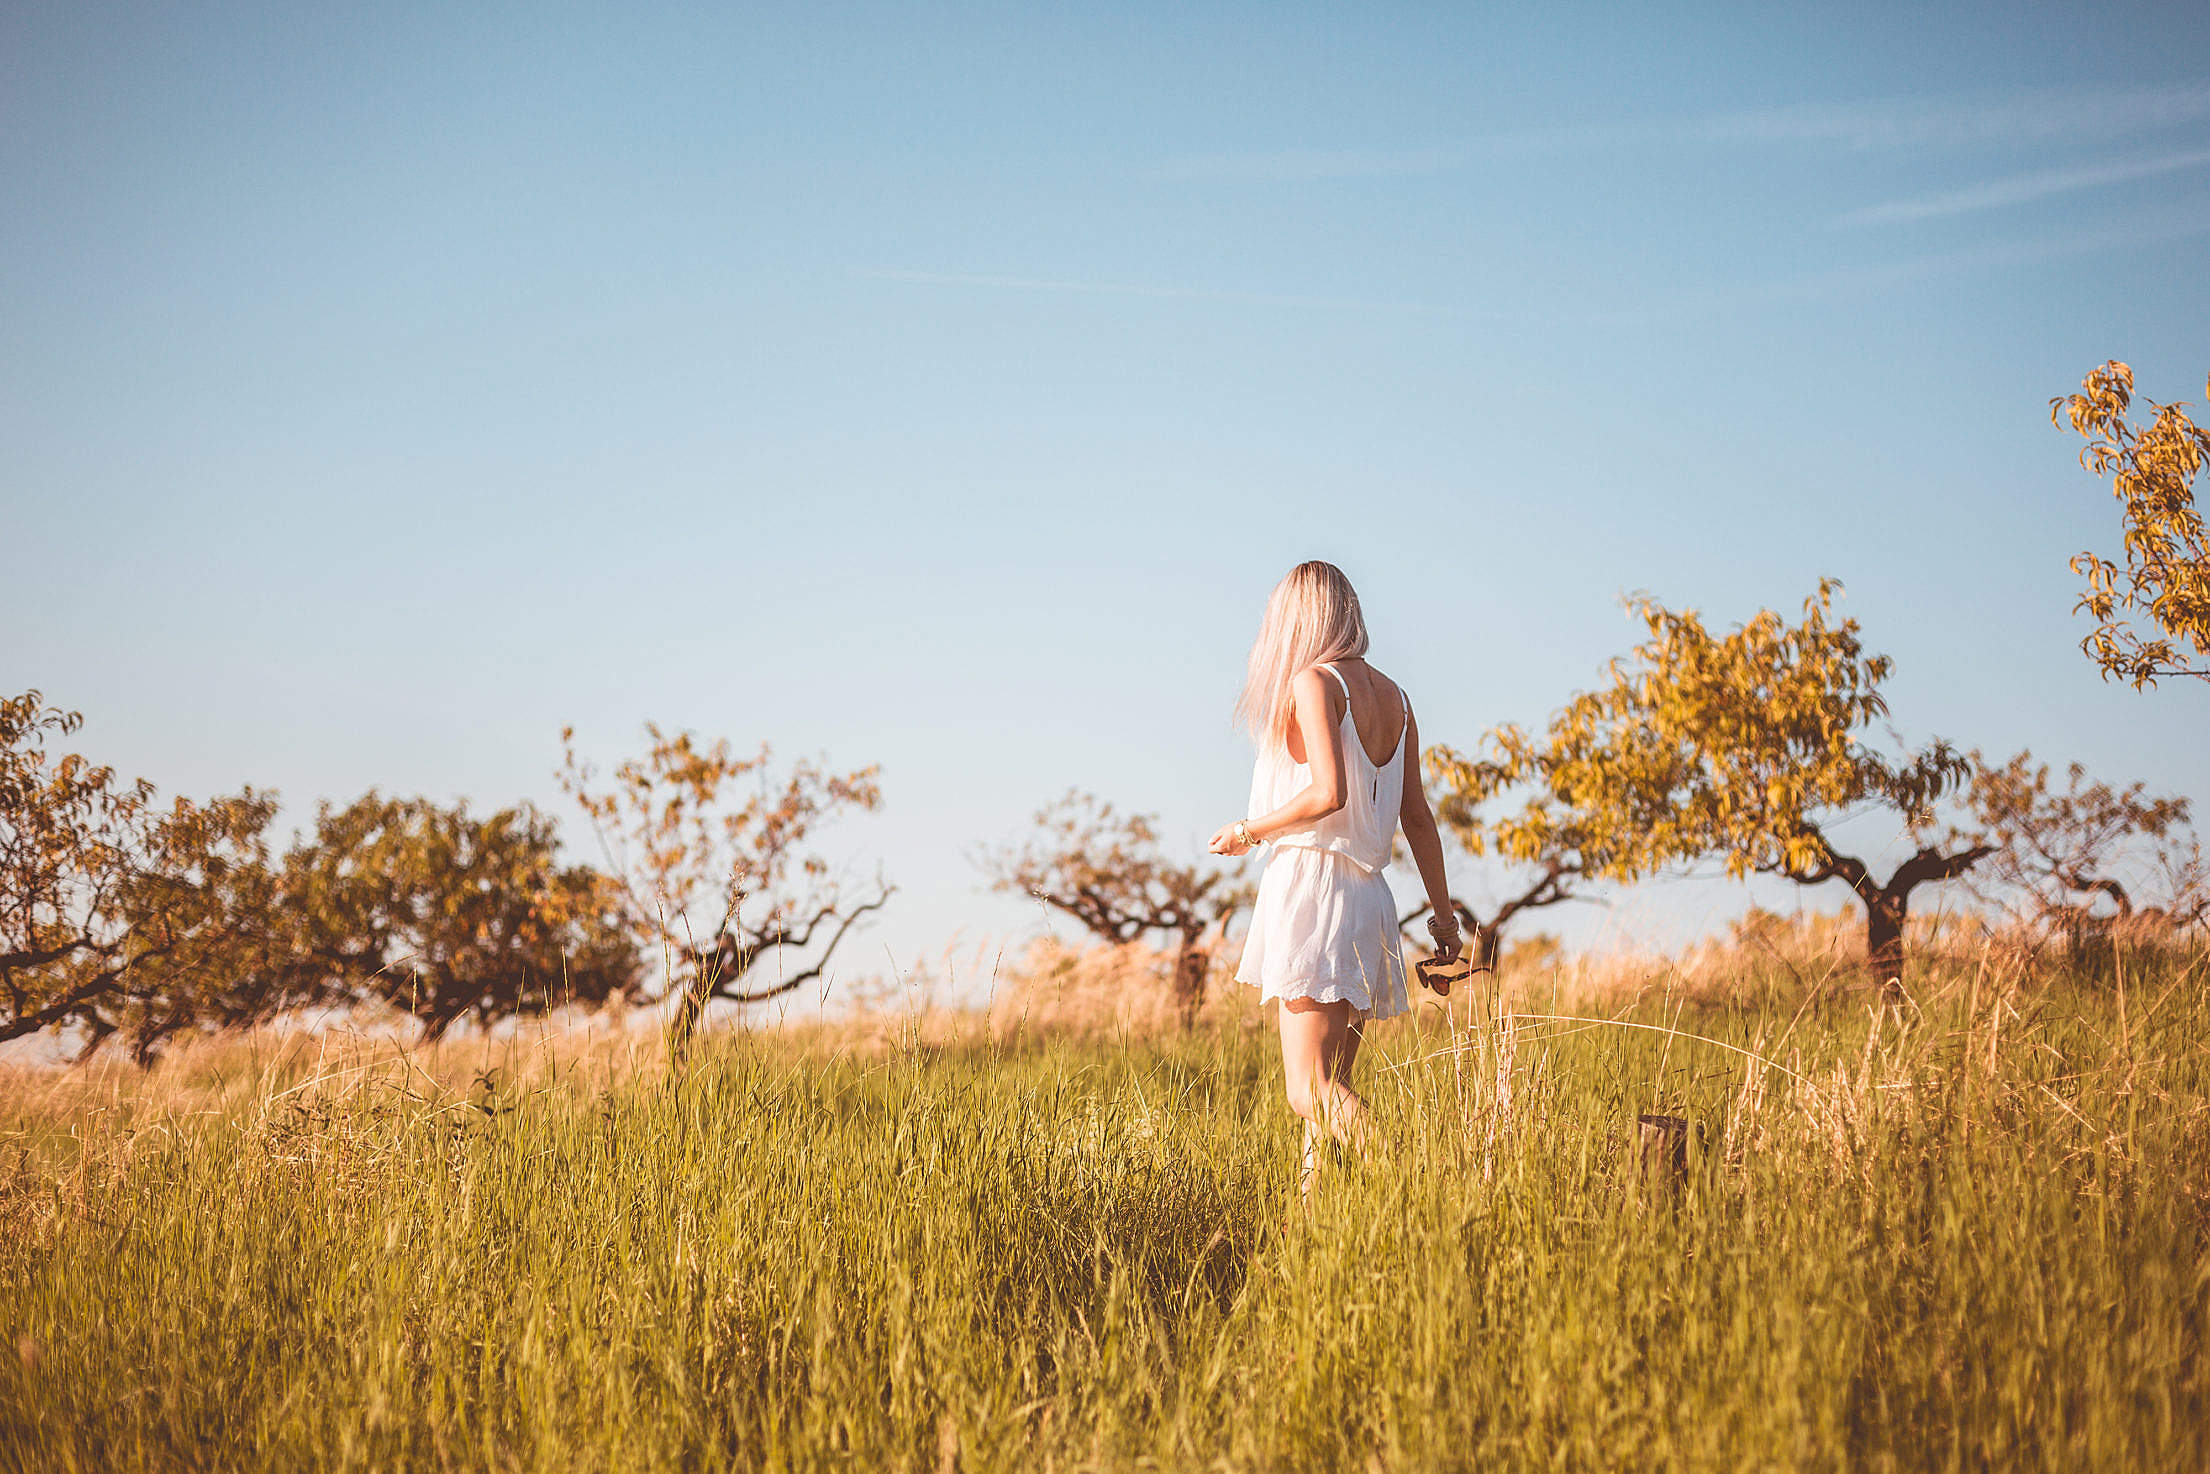 Young Girl Lost in a Meadow Free Stock Photo